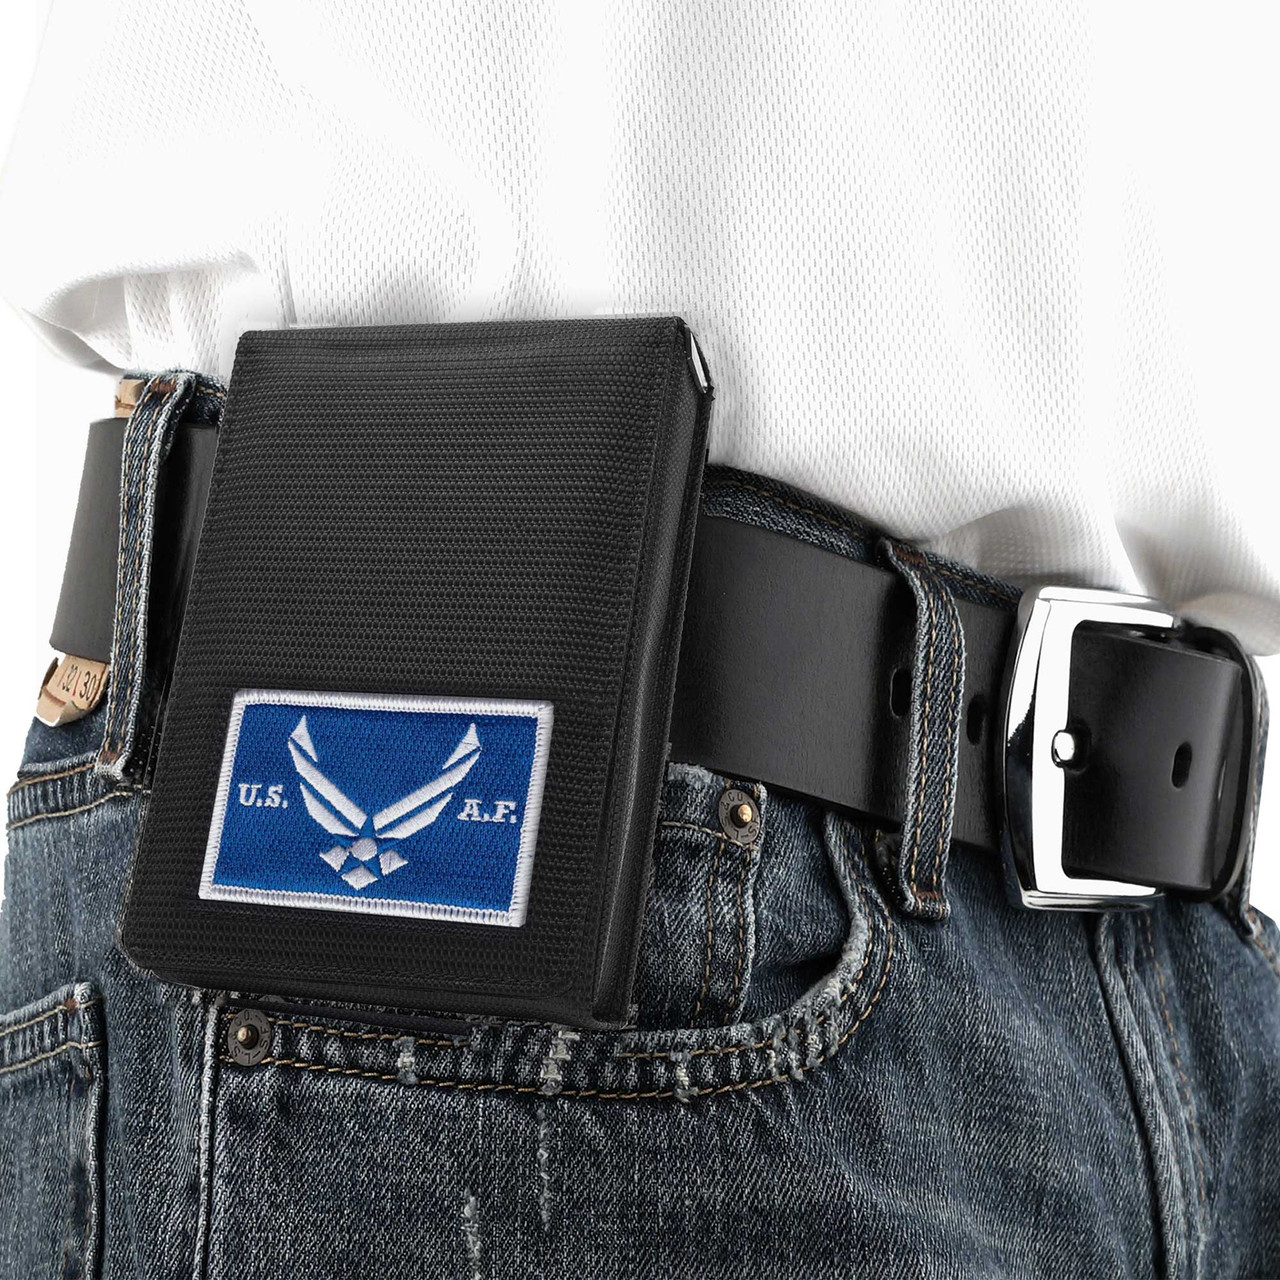 Glock 19X Air Force Tactical Patch Holster